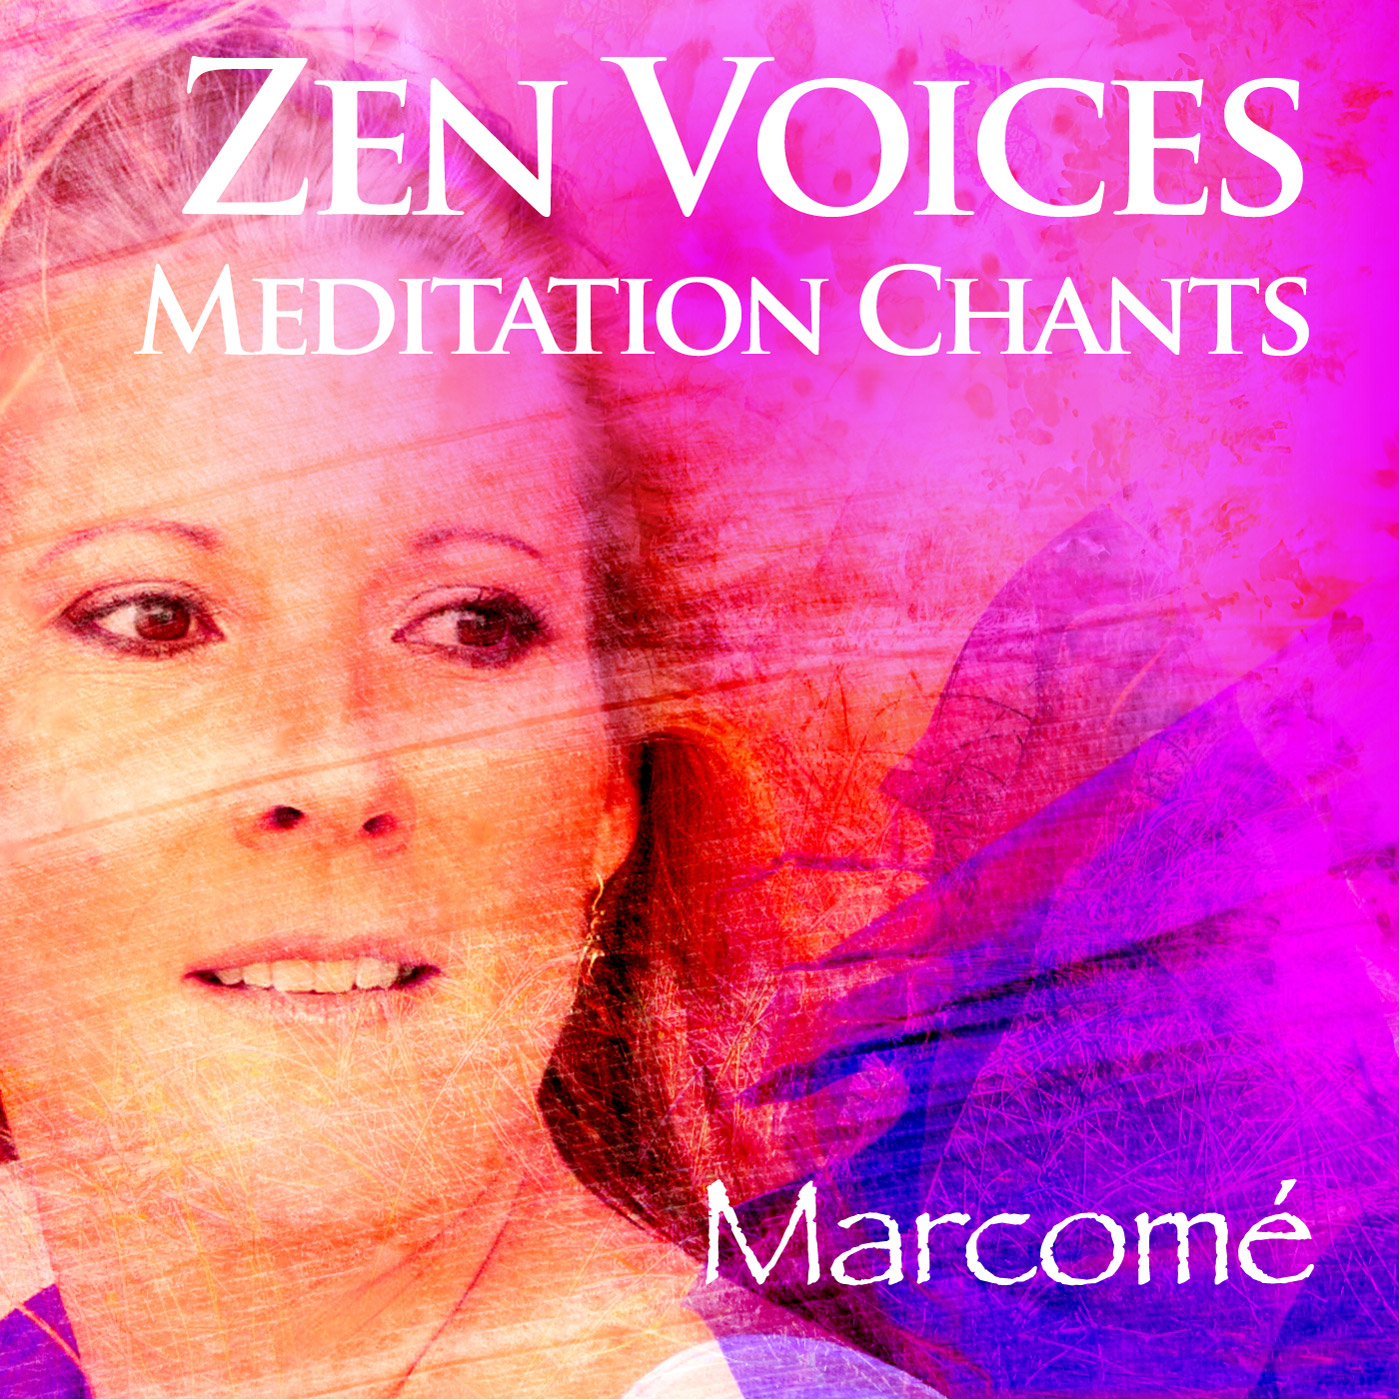 Marcome - Zen Voices Meditation Chants